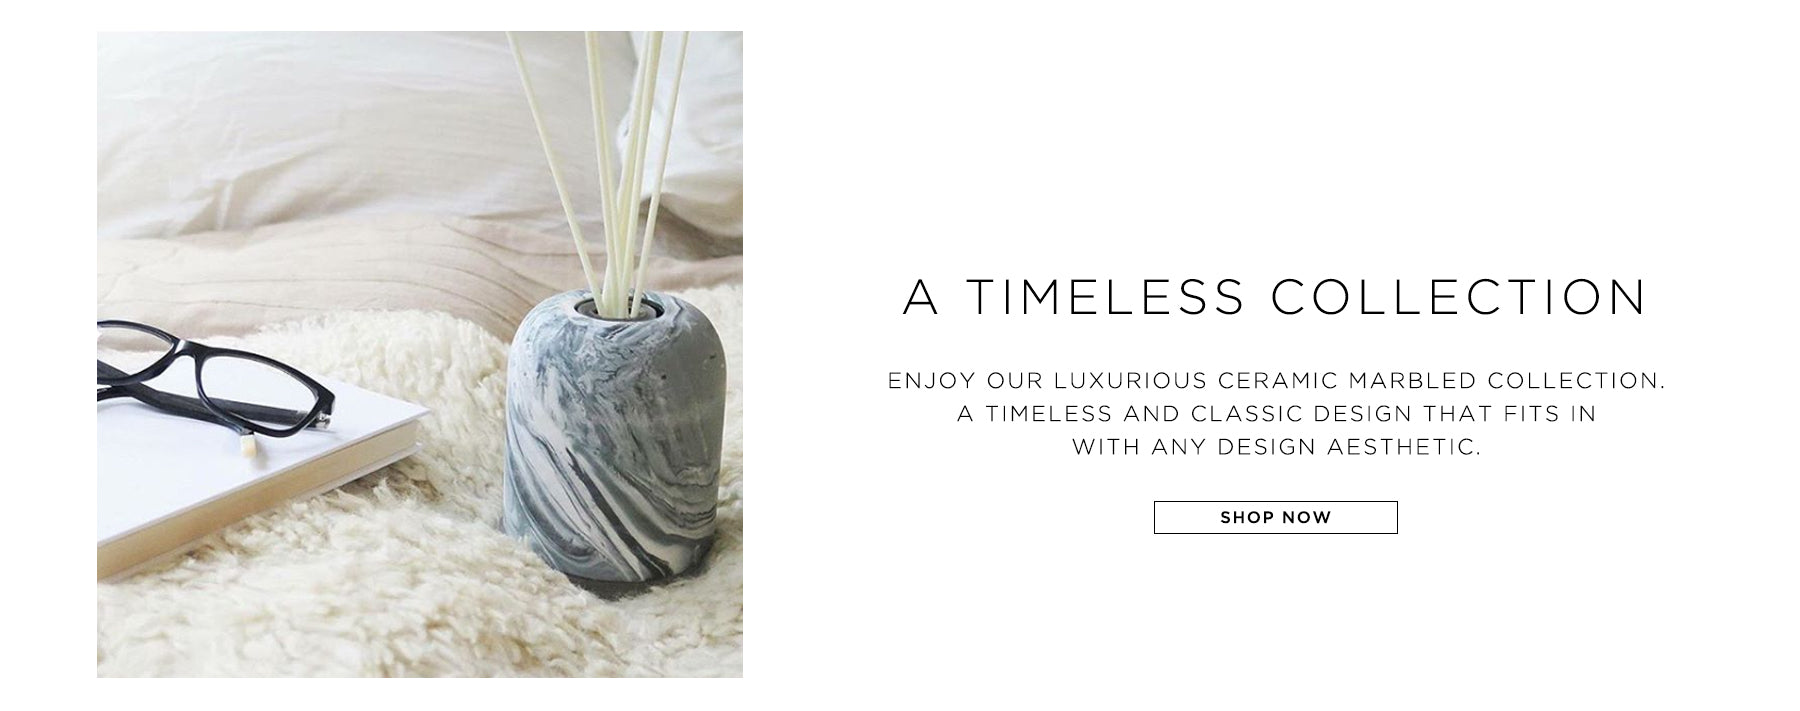 A timeless collection. Enjoy our luxurious ceramic marbled collection. A timeless and classic design that fits in with any design aesthetic. Shop now.